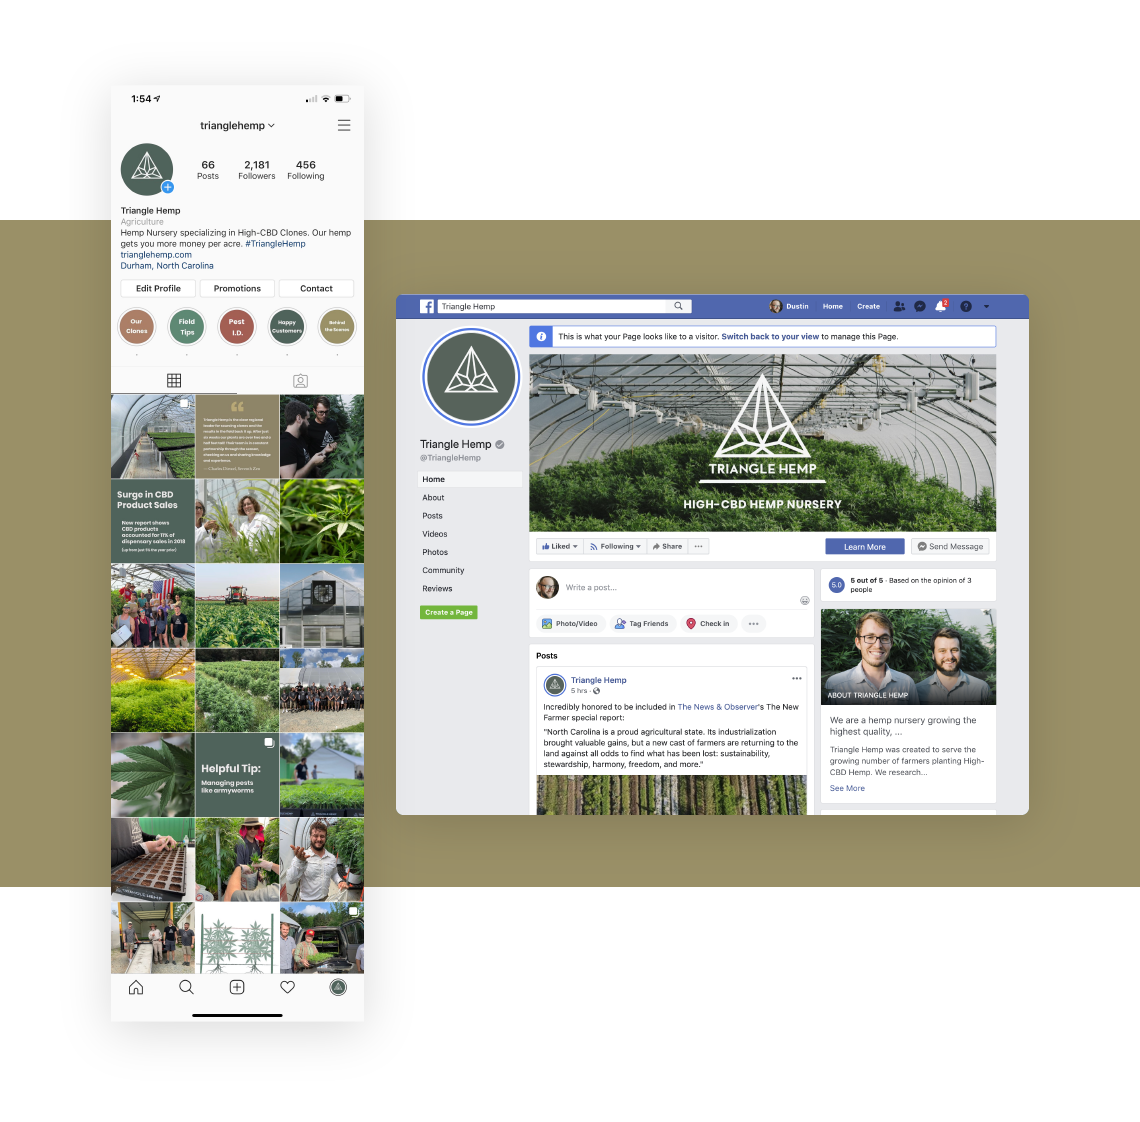 Social media marketing graphic, showing how creative studio Goodness helps their client Triangle Hemp grow their customer audience on Instagram and Facebook